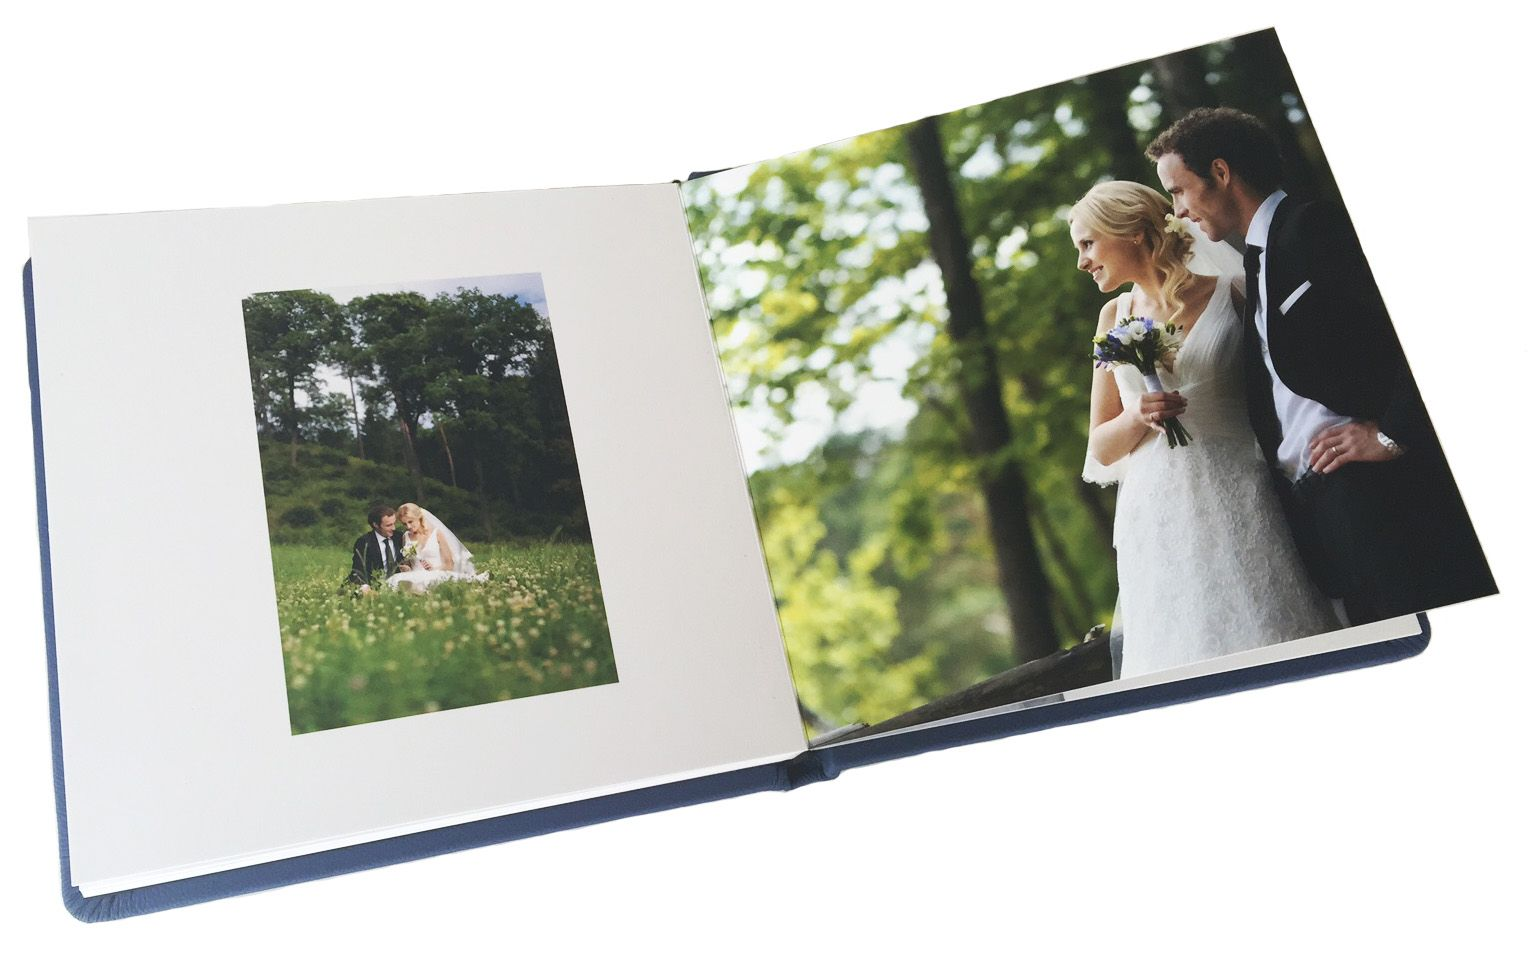 Create Your Own Weddingalbums With Our Easy To Use Online Services